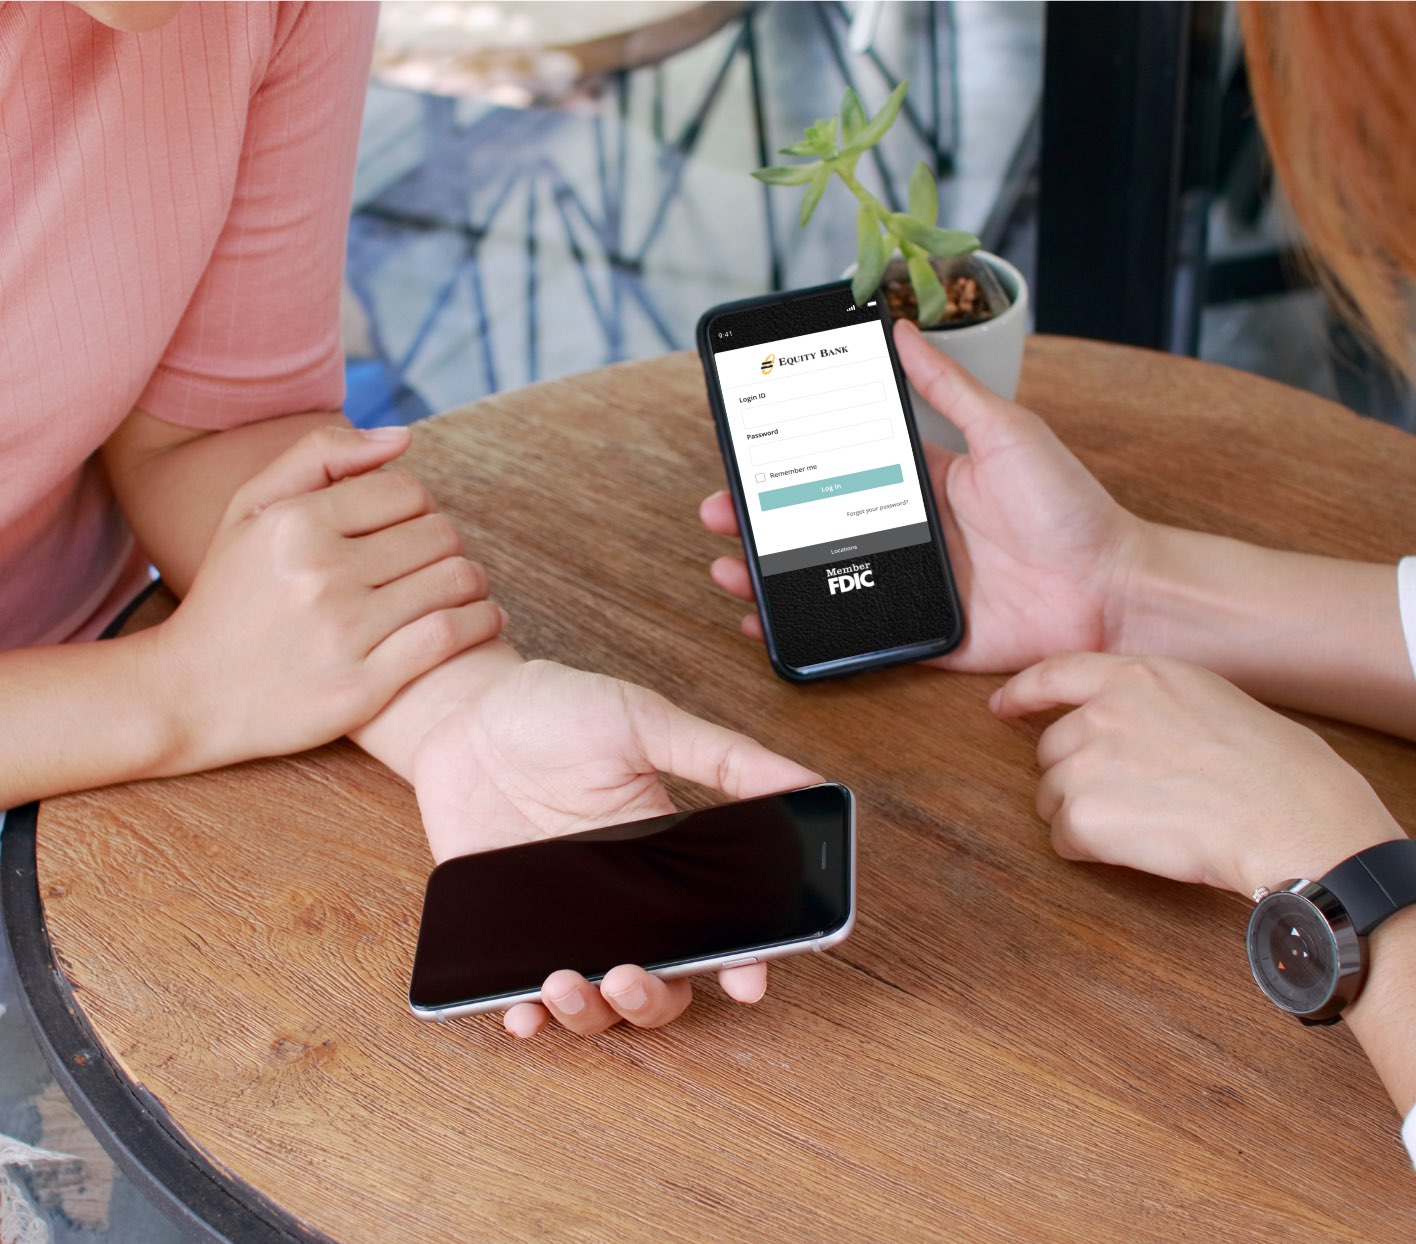 Two people holding phones over a table using the banking app